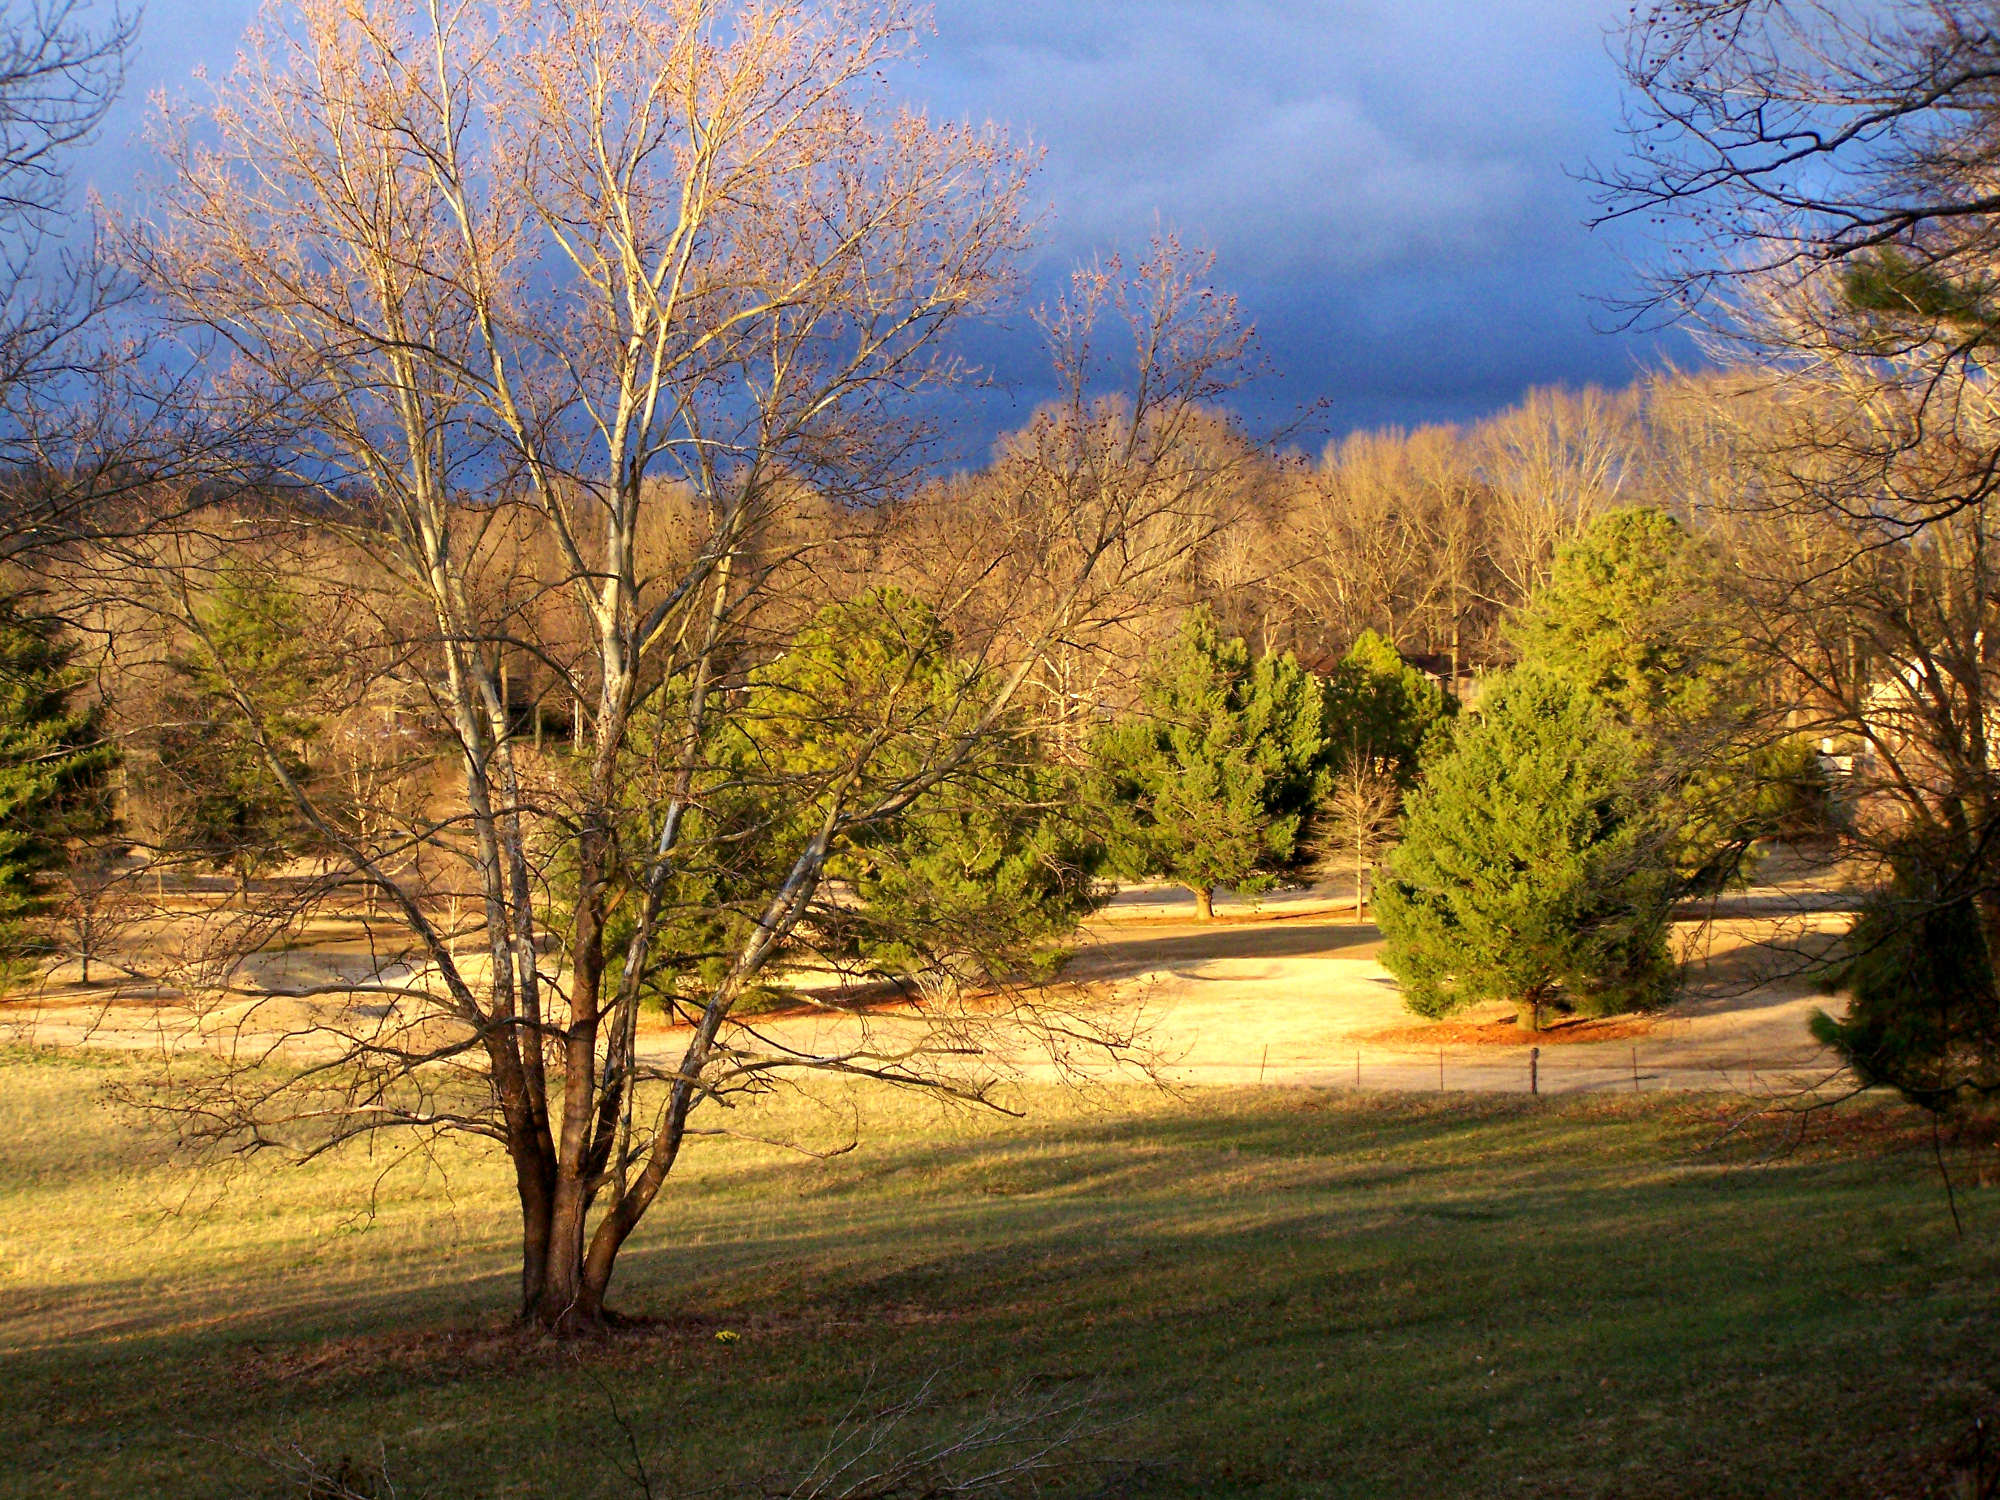 Calm before the storm. My backyard at a previous residence in Tennessee.